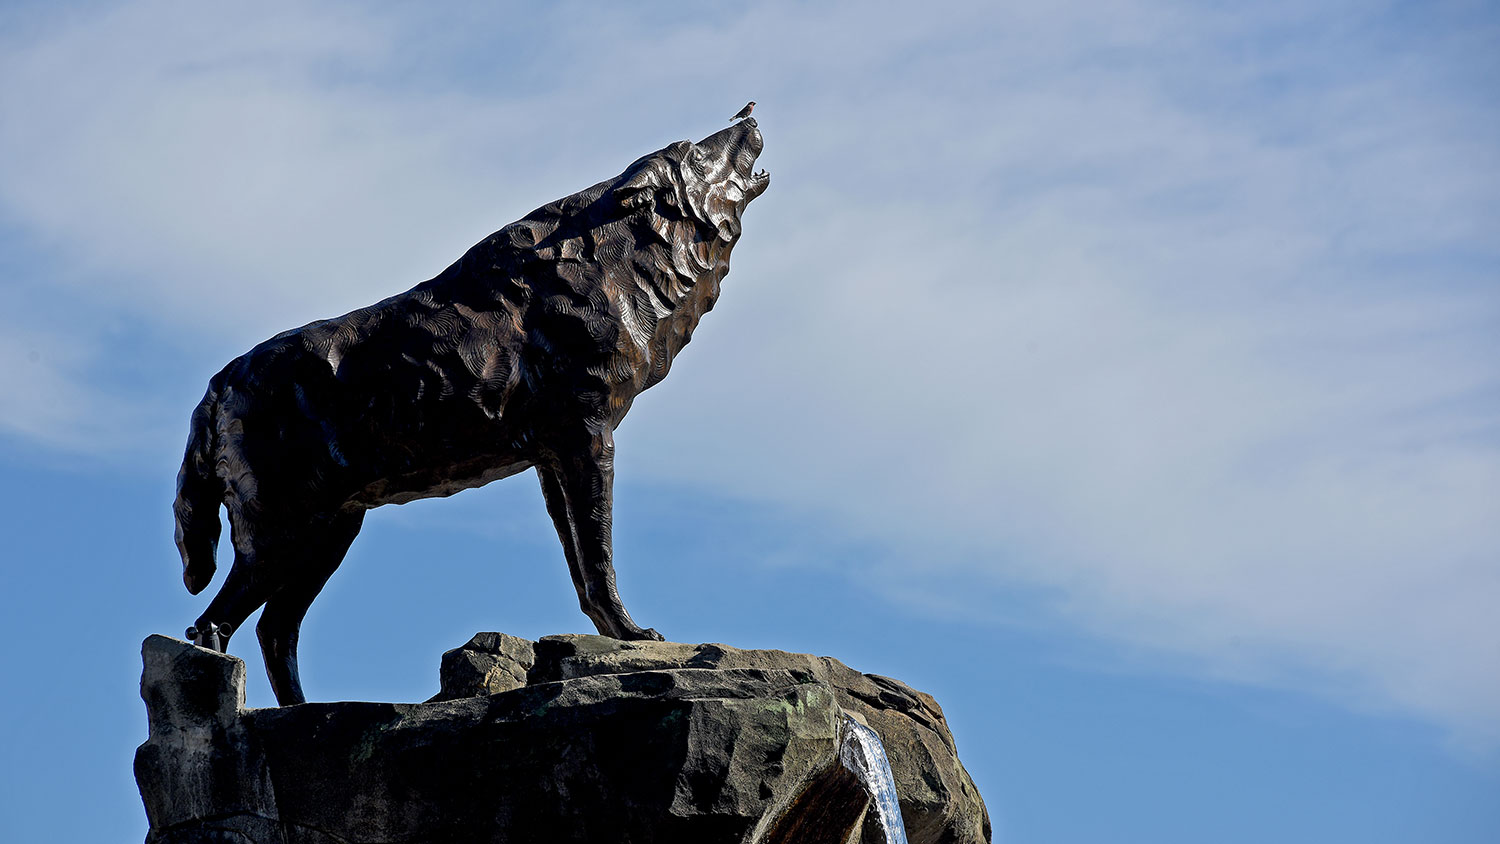 NCState wolf statue